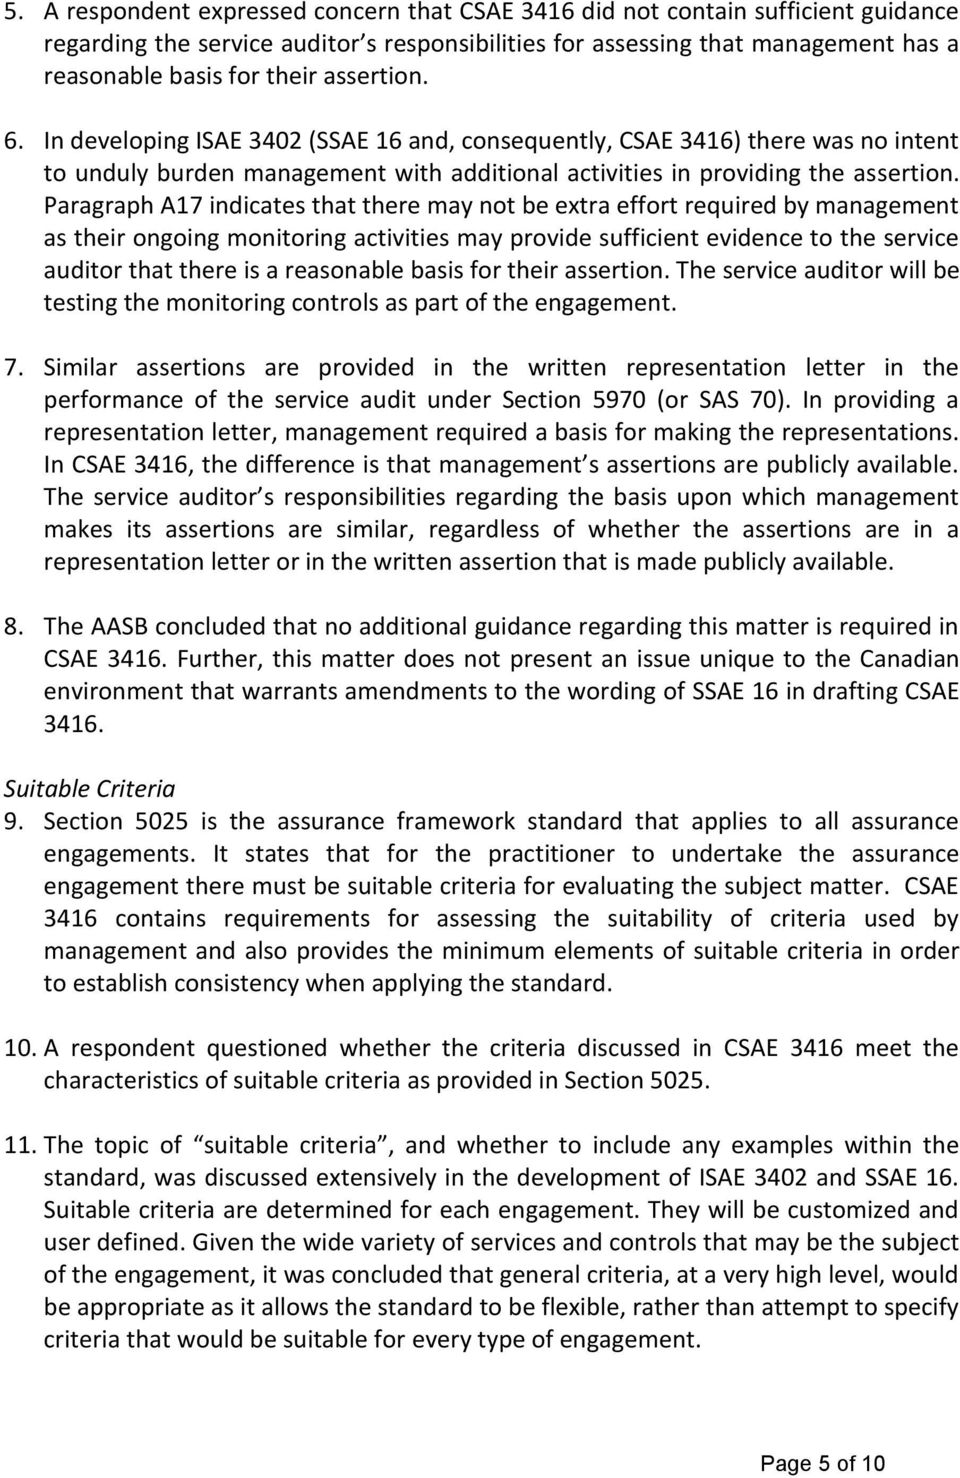 Paragraph A17 indicates that there may not be extra effort required by management as their ongoing monitoring activities may provide sufficient evidence to the service auditor that there is a